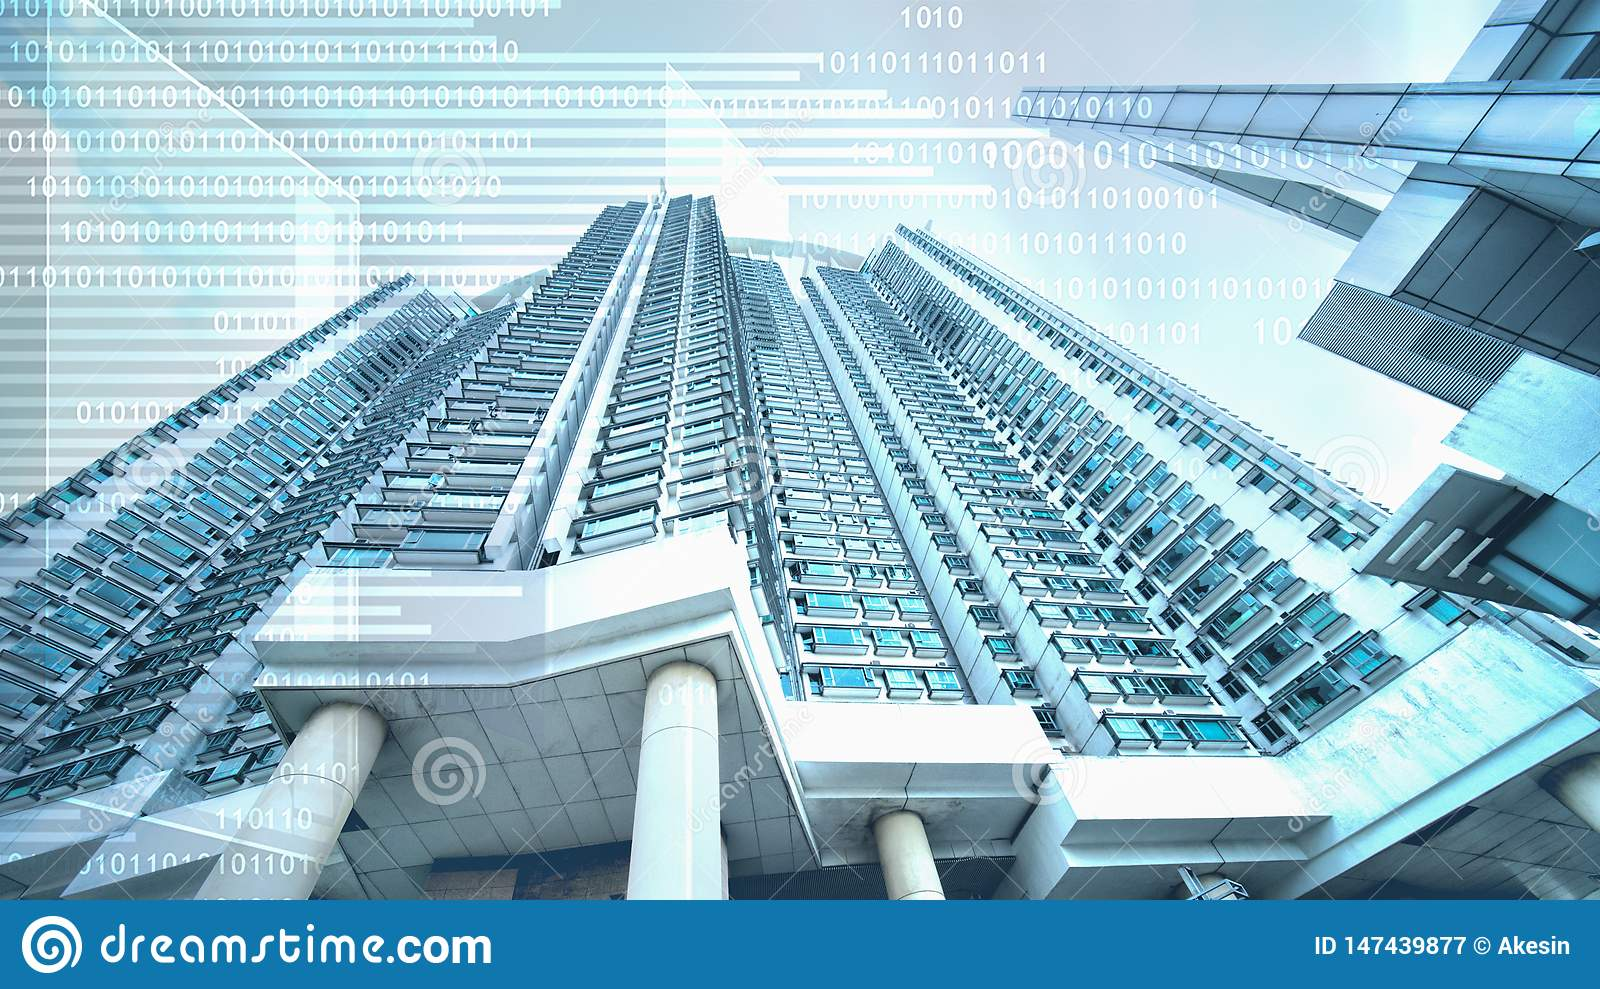 Abstract digital business background of digital sign overlay with skyscraper in concept of real estate business with digital